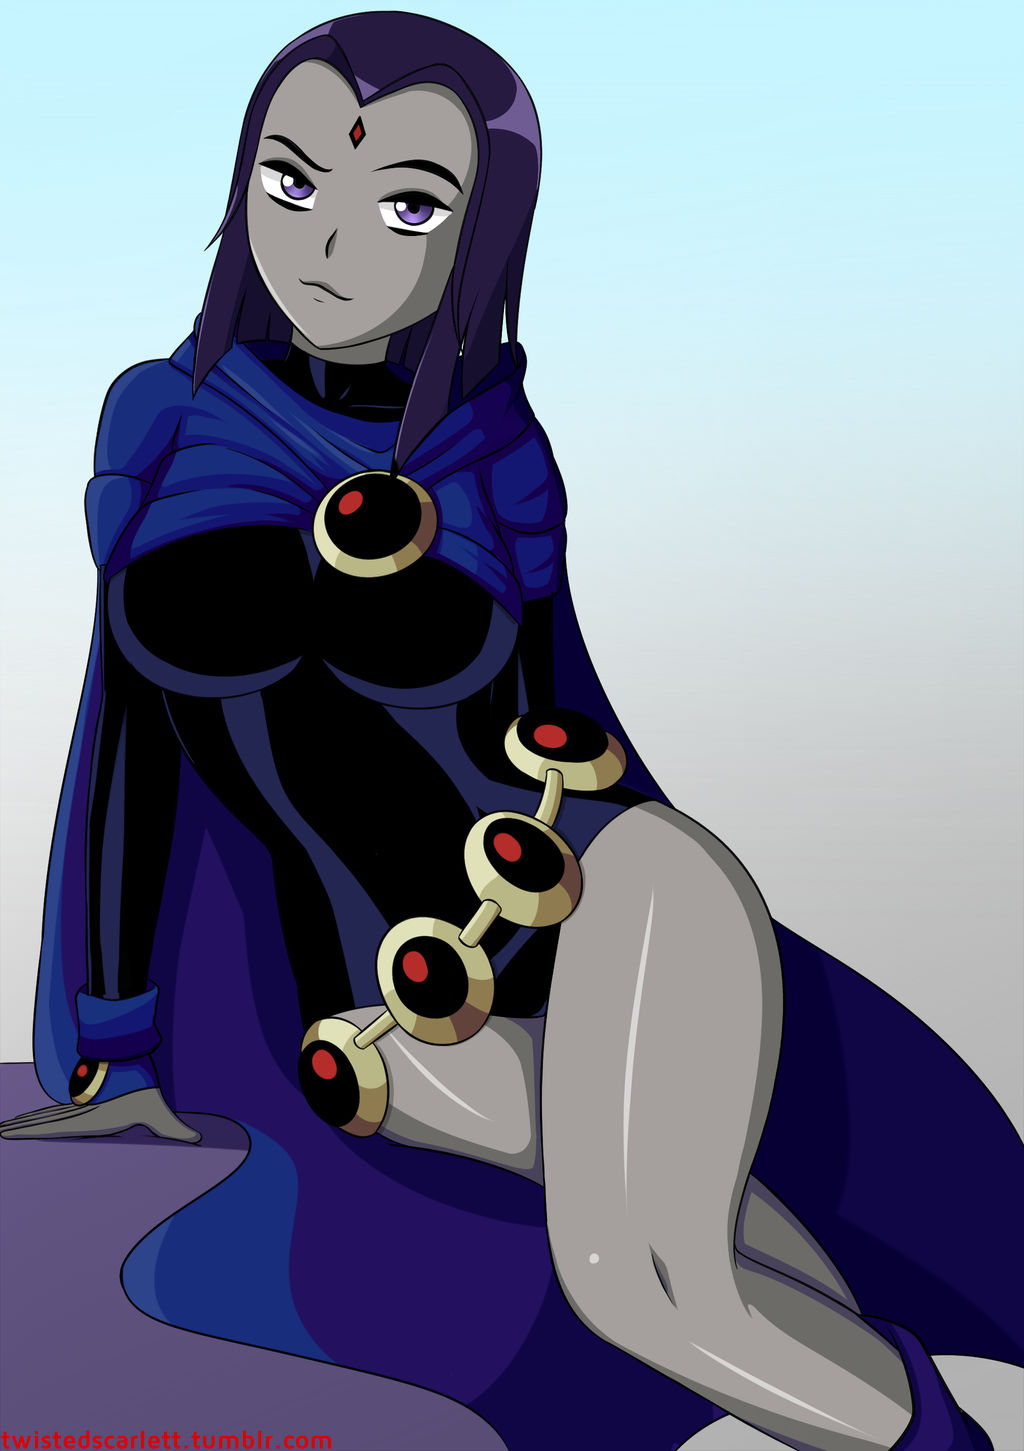 Teen Titans Raven By Twistedscarlett60 On Deviantart-4336